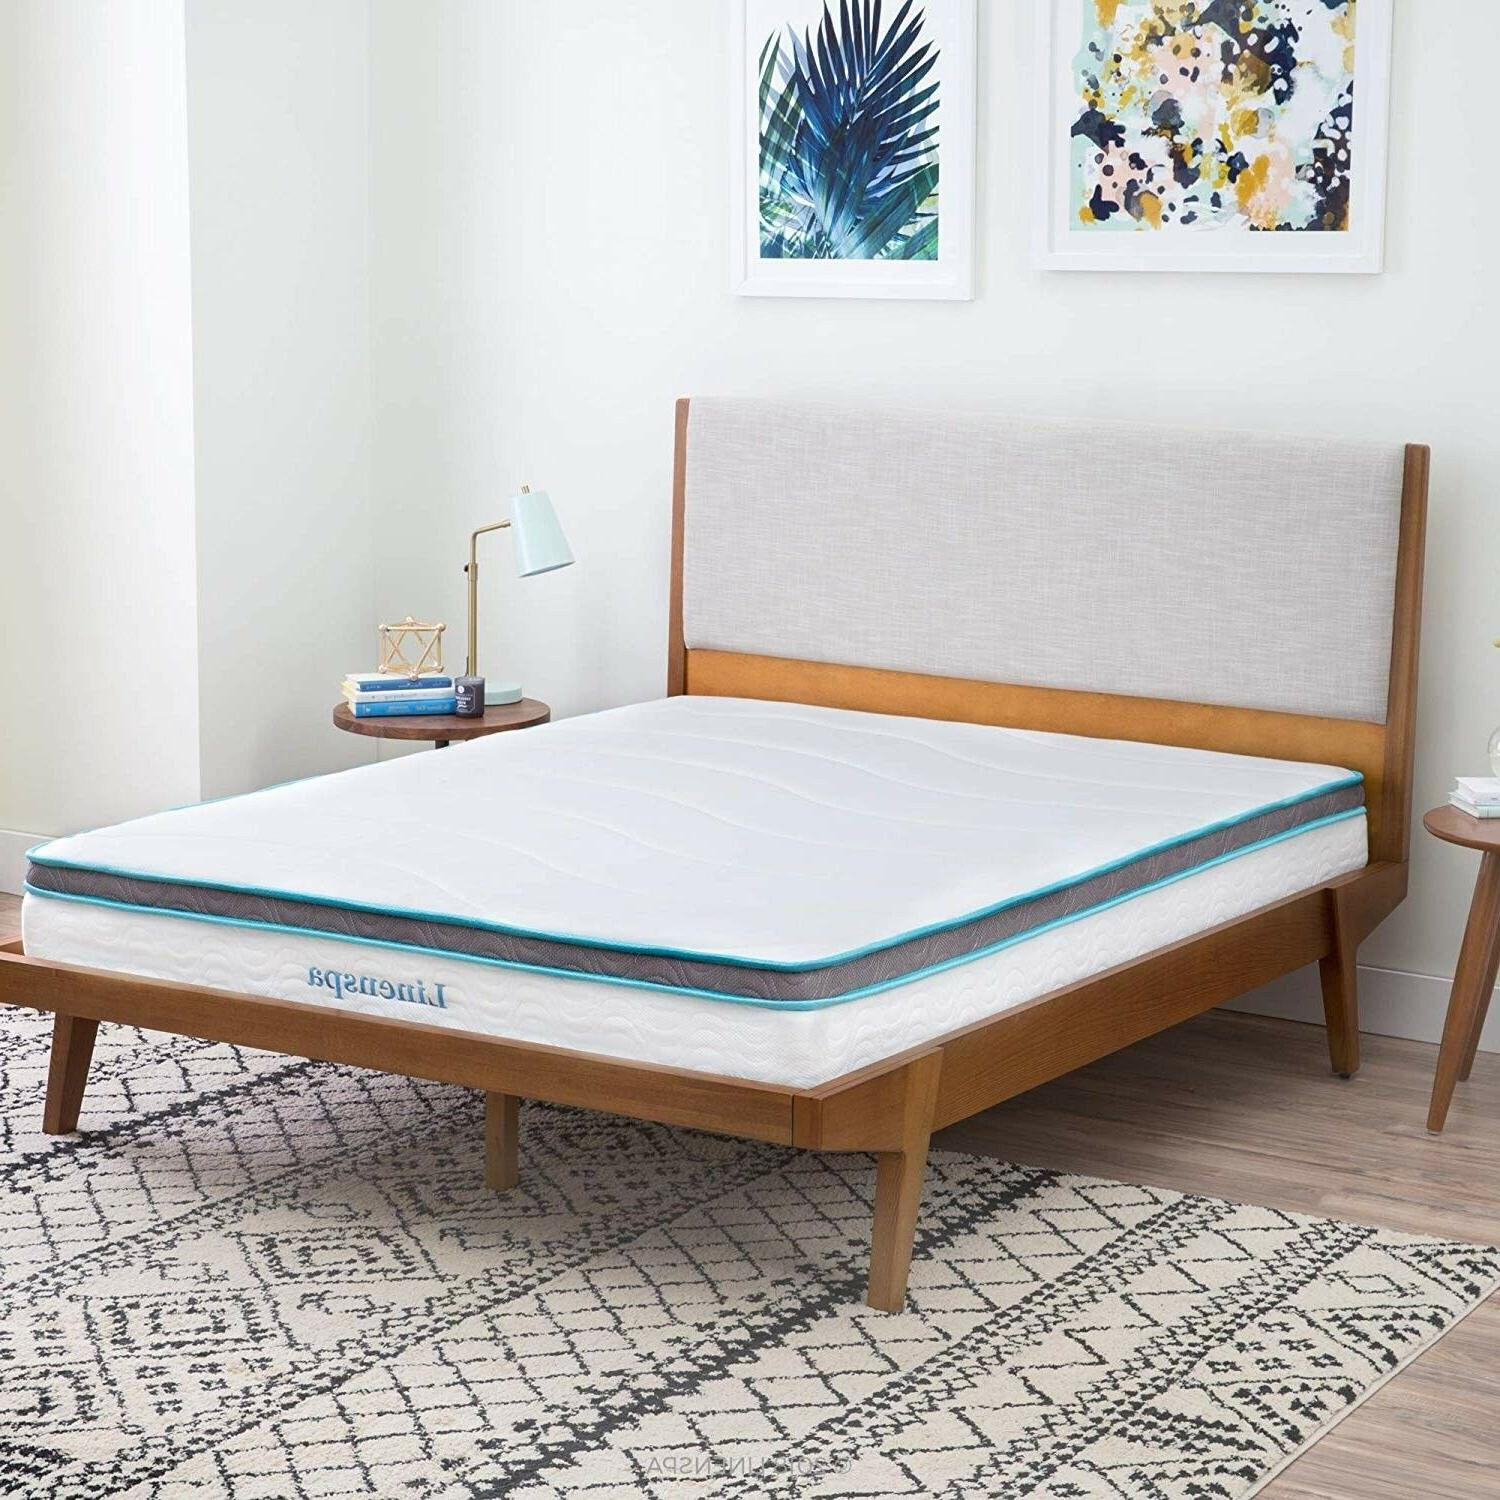 all types 8 inch bed mattress increased